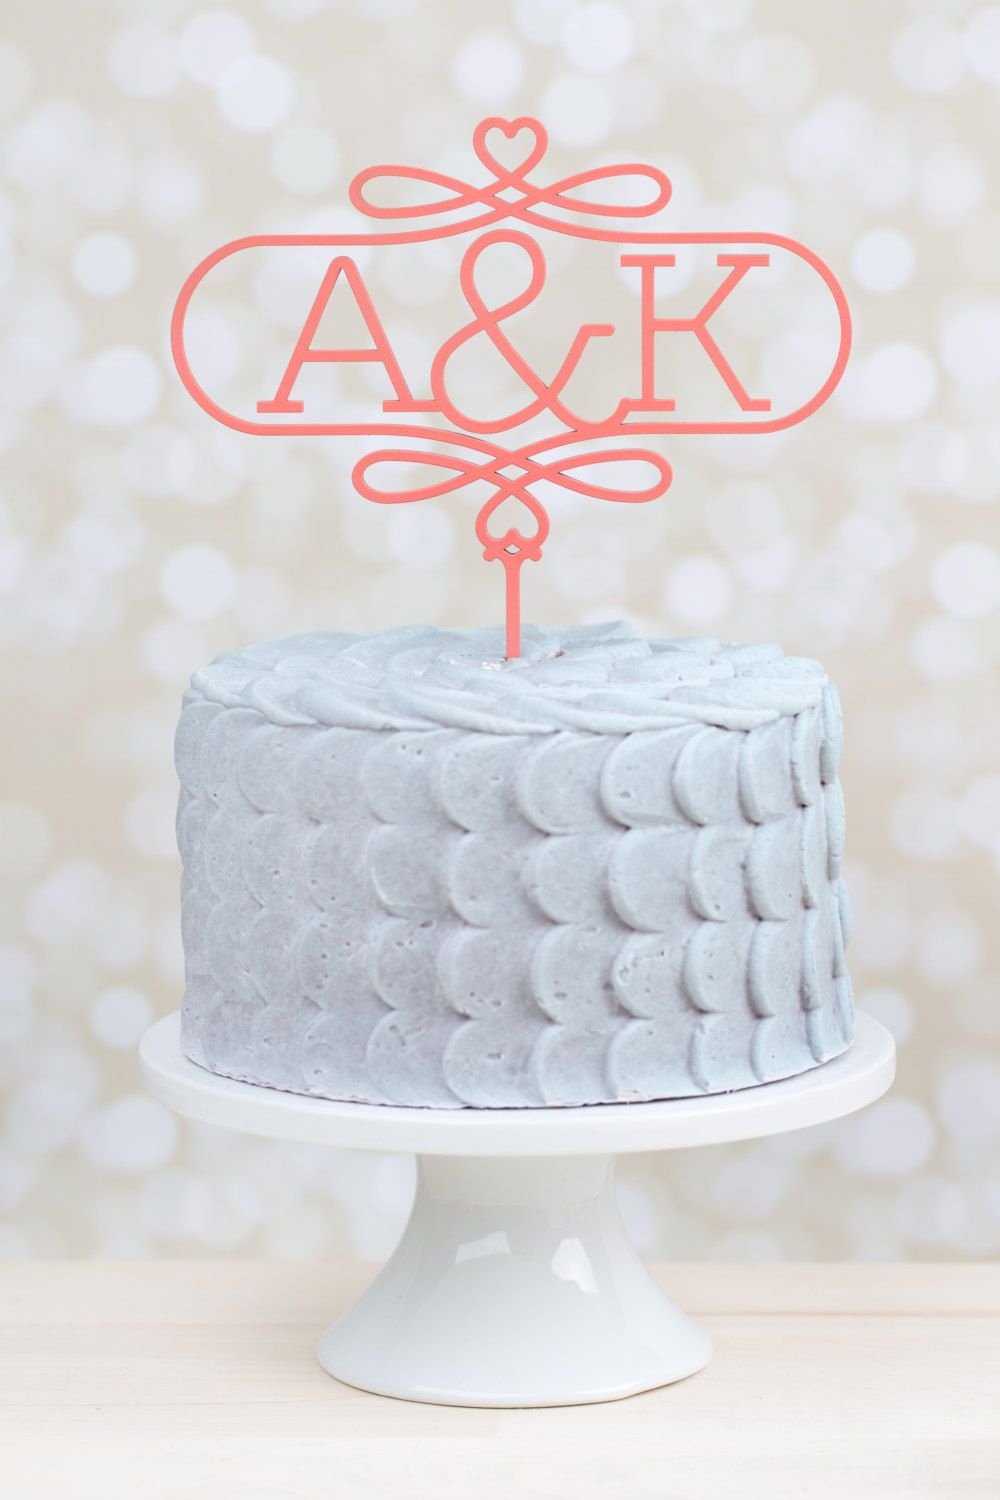 Monogram Wedding Cake Topper Coral by betteroffwed on Etsy   59 00     Monogram Wedding Cake Topper Coral by betteroffwed on Etsy   59 00